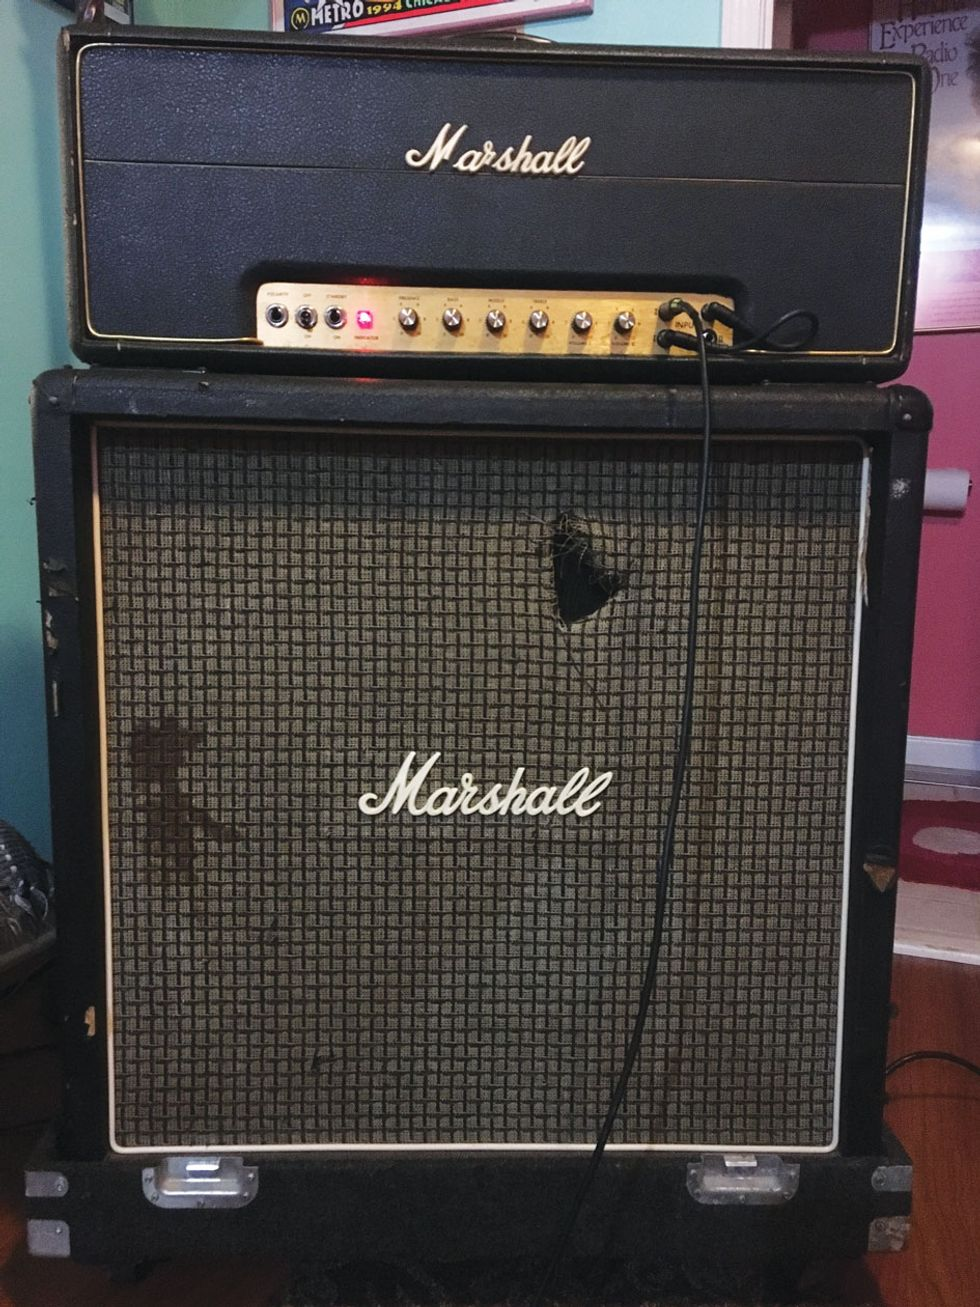 Ask Amp Man Positively Negative Feedback Premier Guitar Tone Control Circuit On Wiring Without A Higher Resistor Value Is Among The Design Aspects That Make An Old School Marshall Have More Grit Or Grind Than Fender